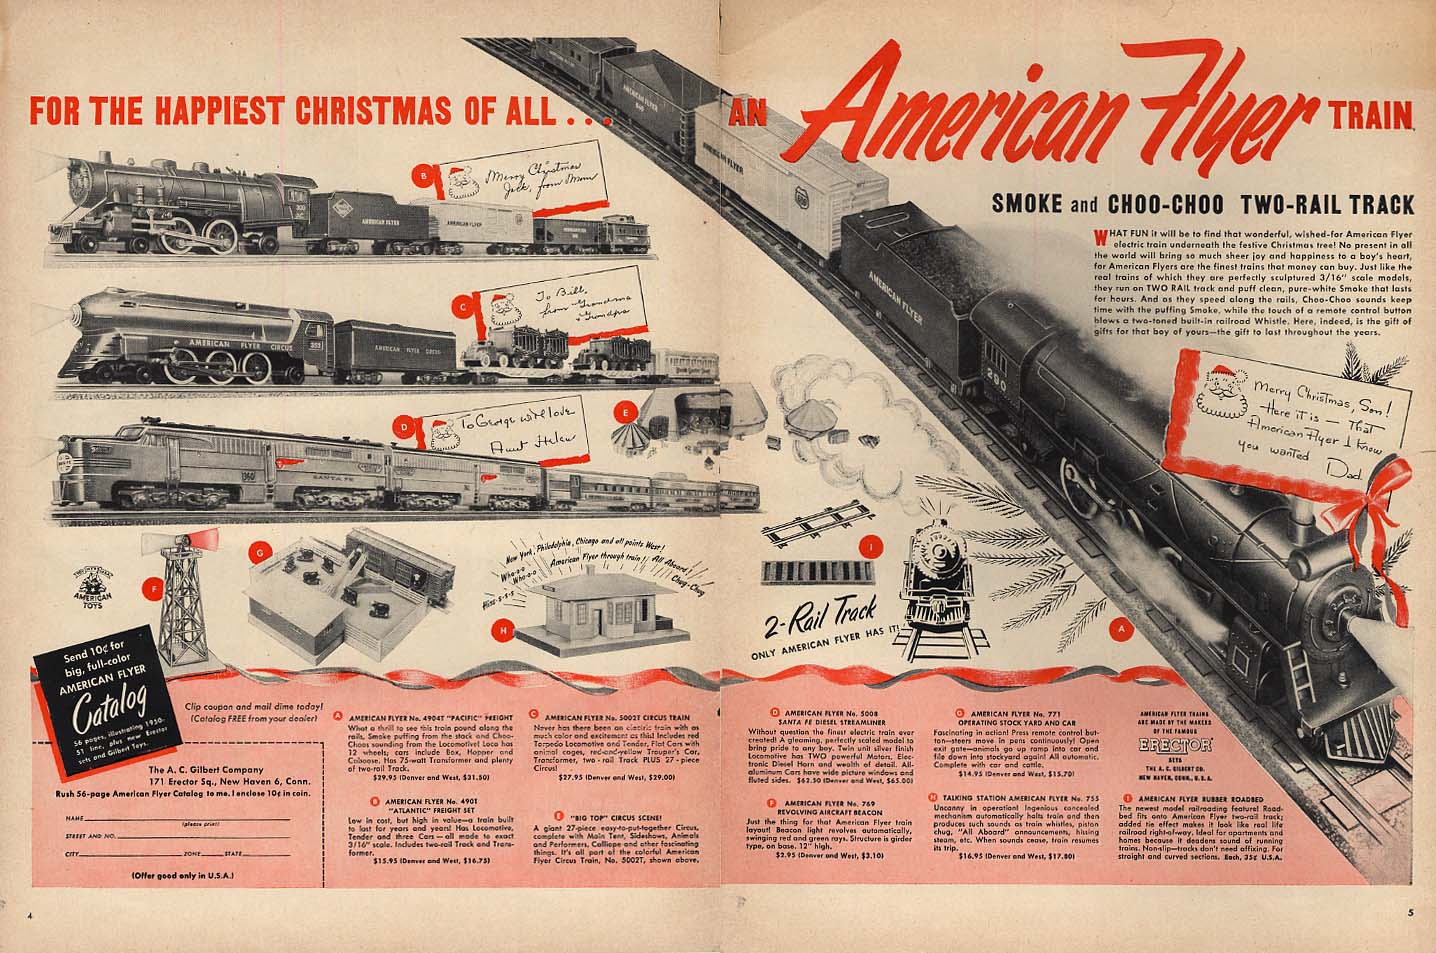 Happiest Christmas of All American Flyer Electric Trains ad 1950 L